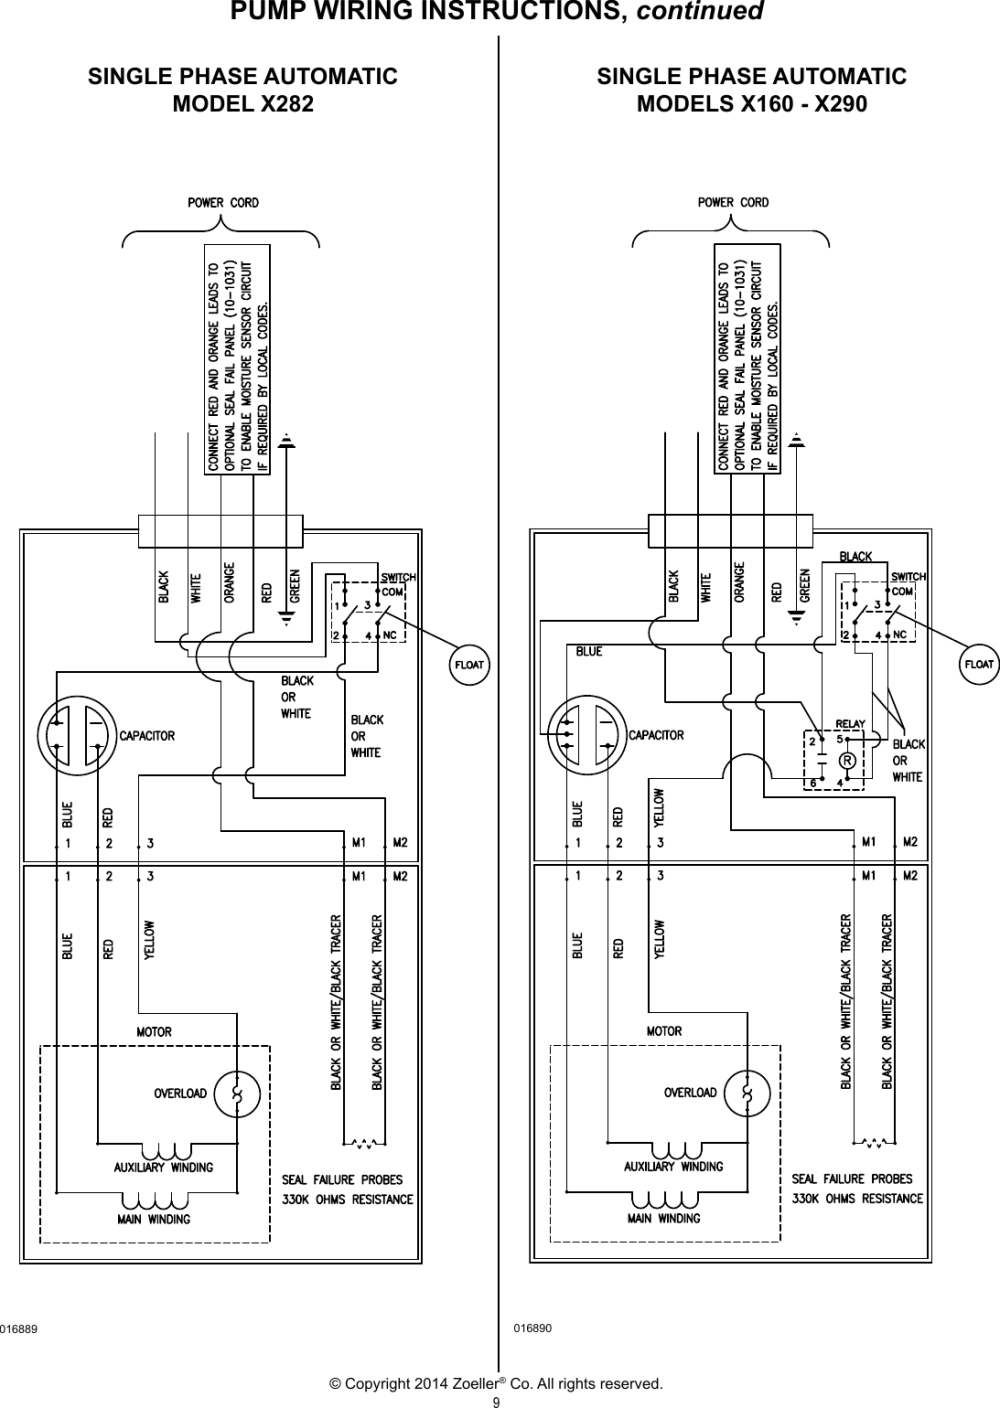 medium resolution of 231 1 zoeller x280 series explosion proof pump owners manual user zoeller wiring diagram page 9